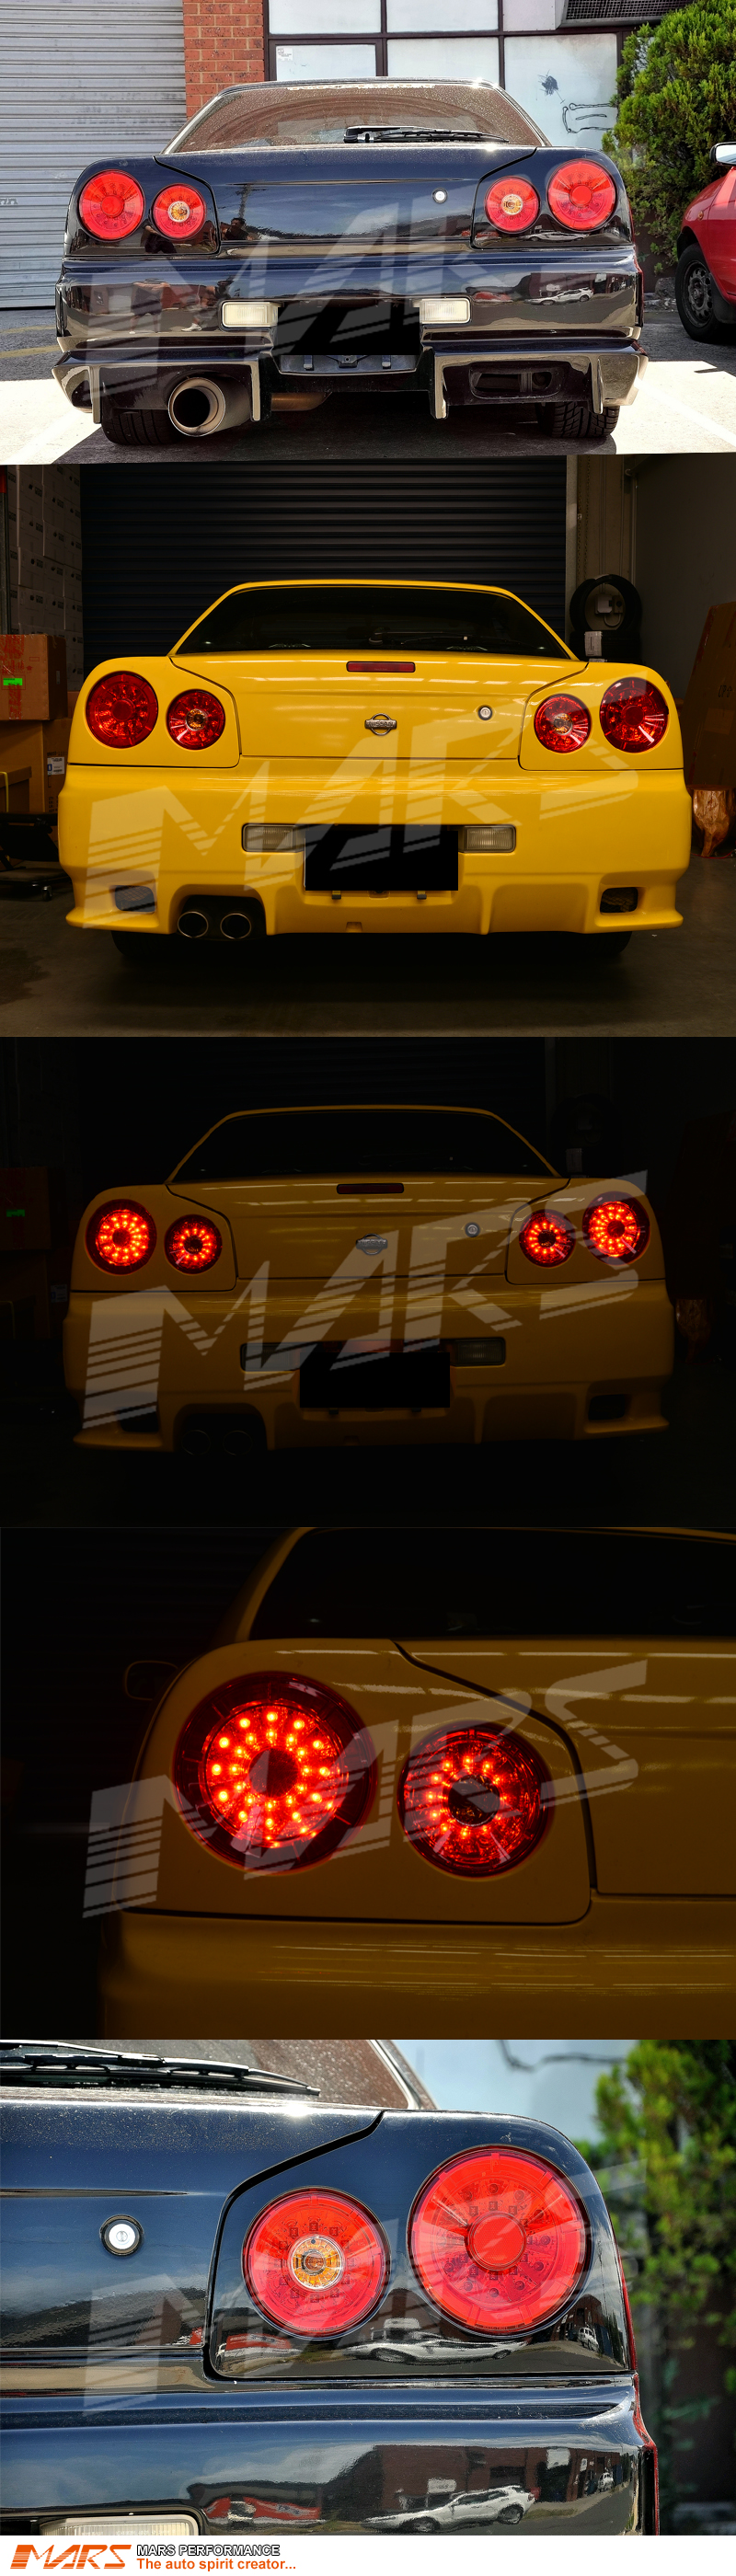 Red Clear Led Tail Lights For Nissan R34 Skyline Coupe Gts